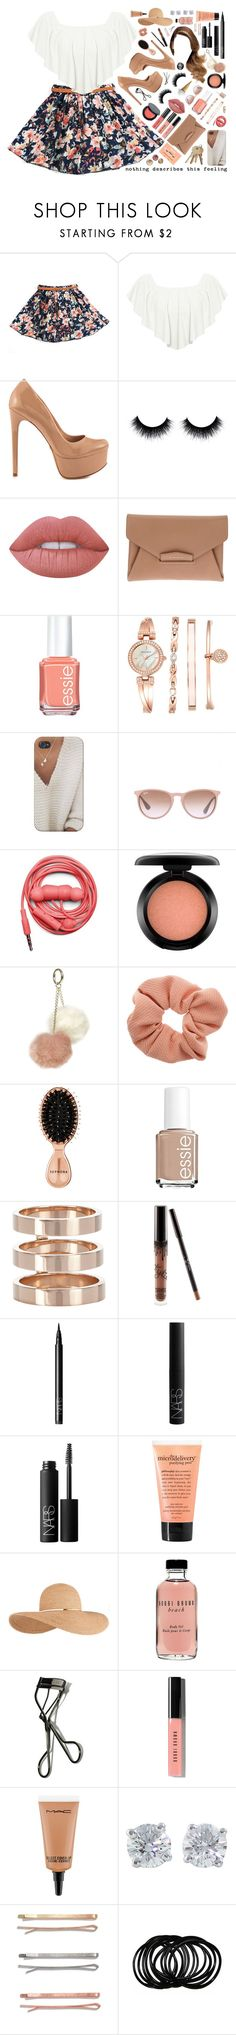 """""""this feeling."""" by dyciana ❤ liked on Polyvore featuring WearAll, Schutz, Bobbi Brown Cosmetics, Lime Crime, Givenchy, Essie, Anne Klein, Ray-Ban, Urbanears and MAC Cosmetics"""